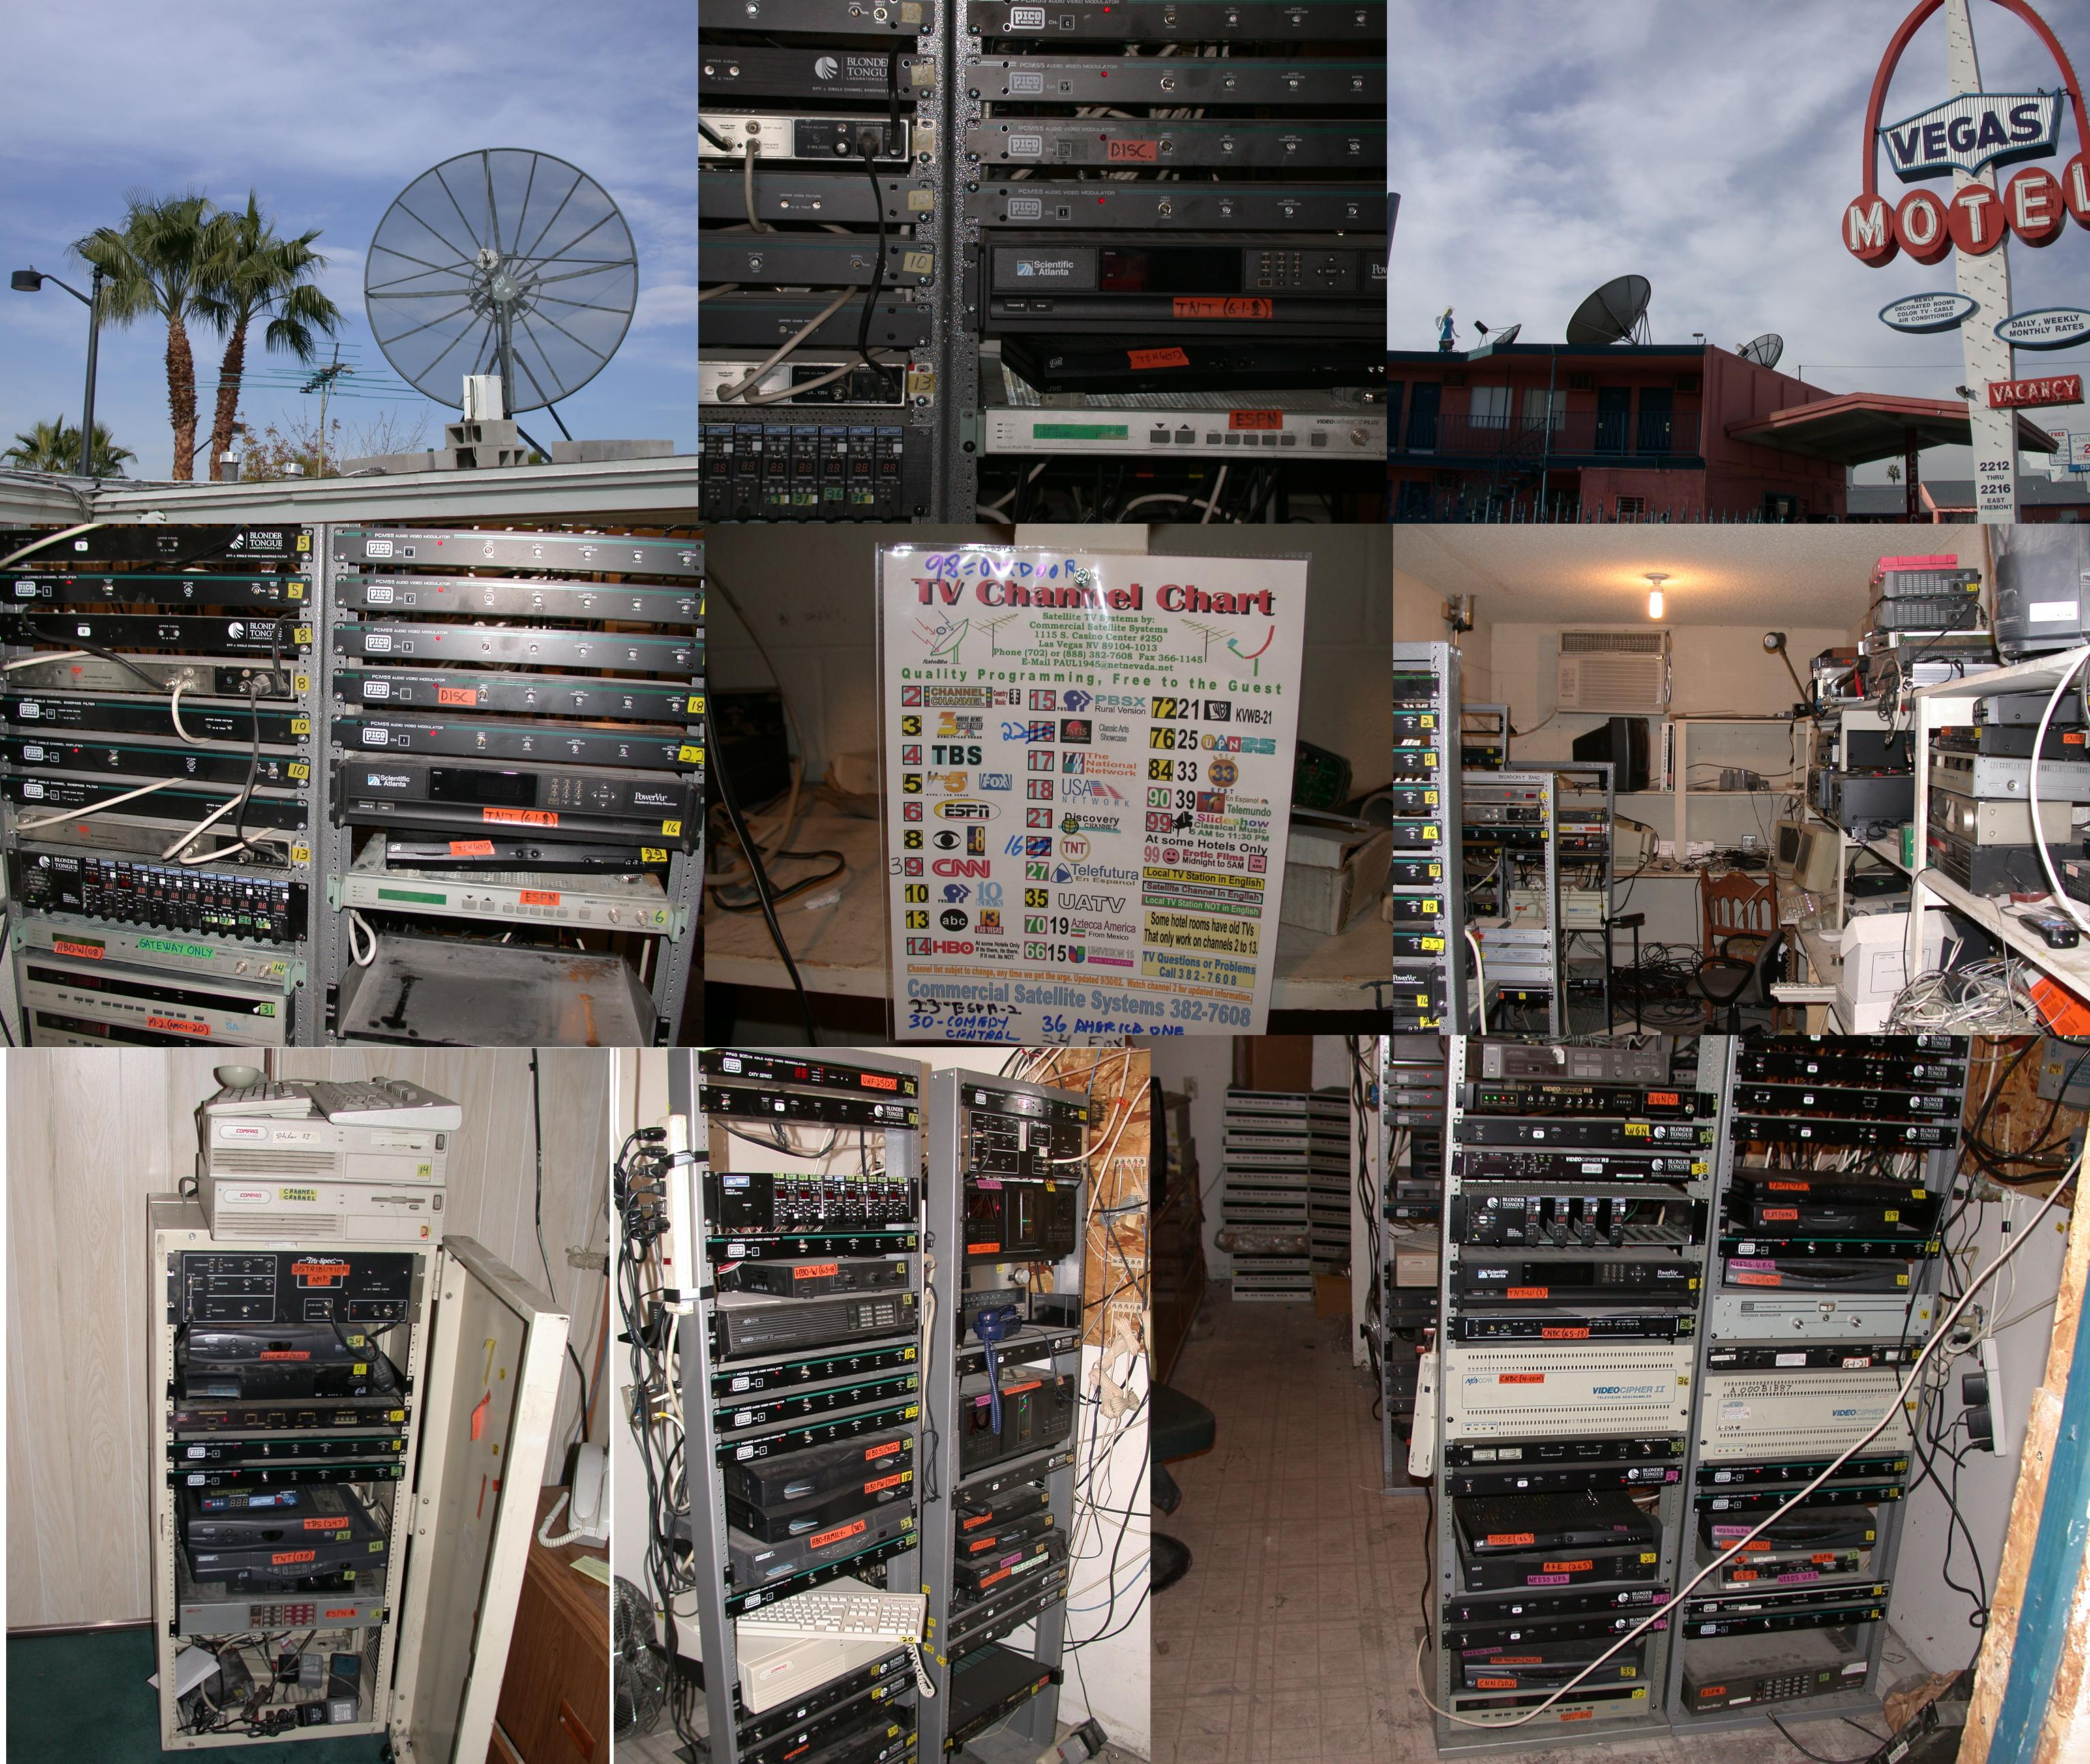 Some Small Satellite TV Systems for Motels